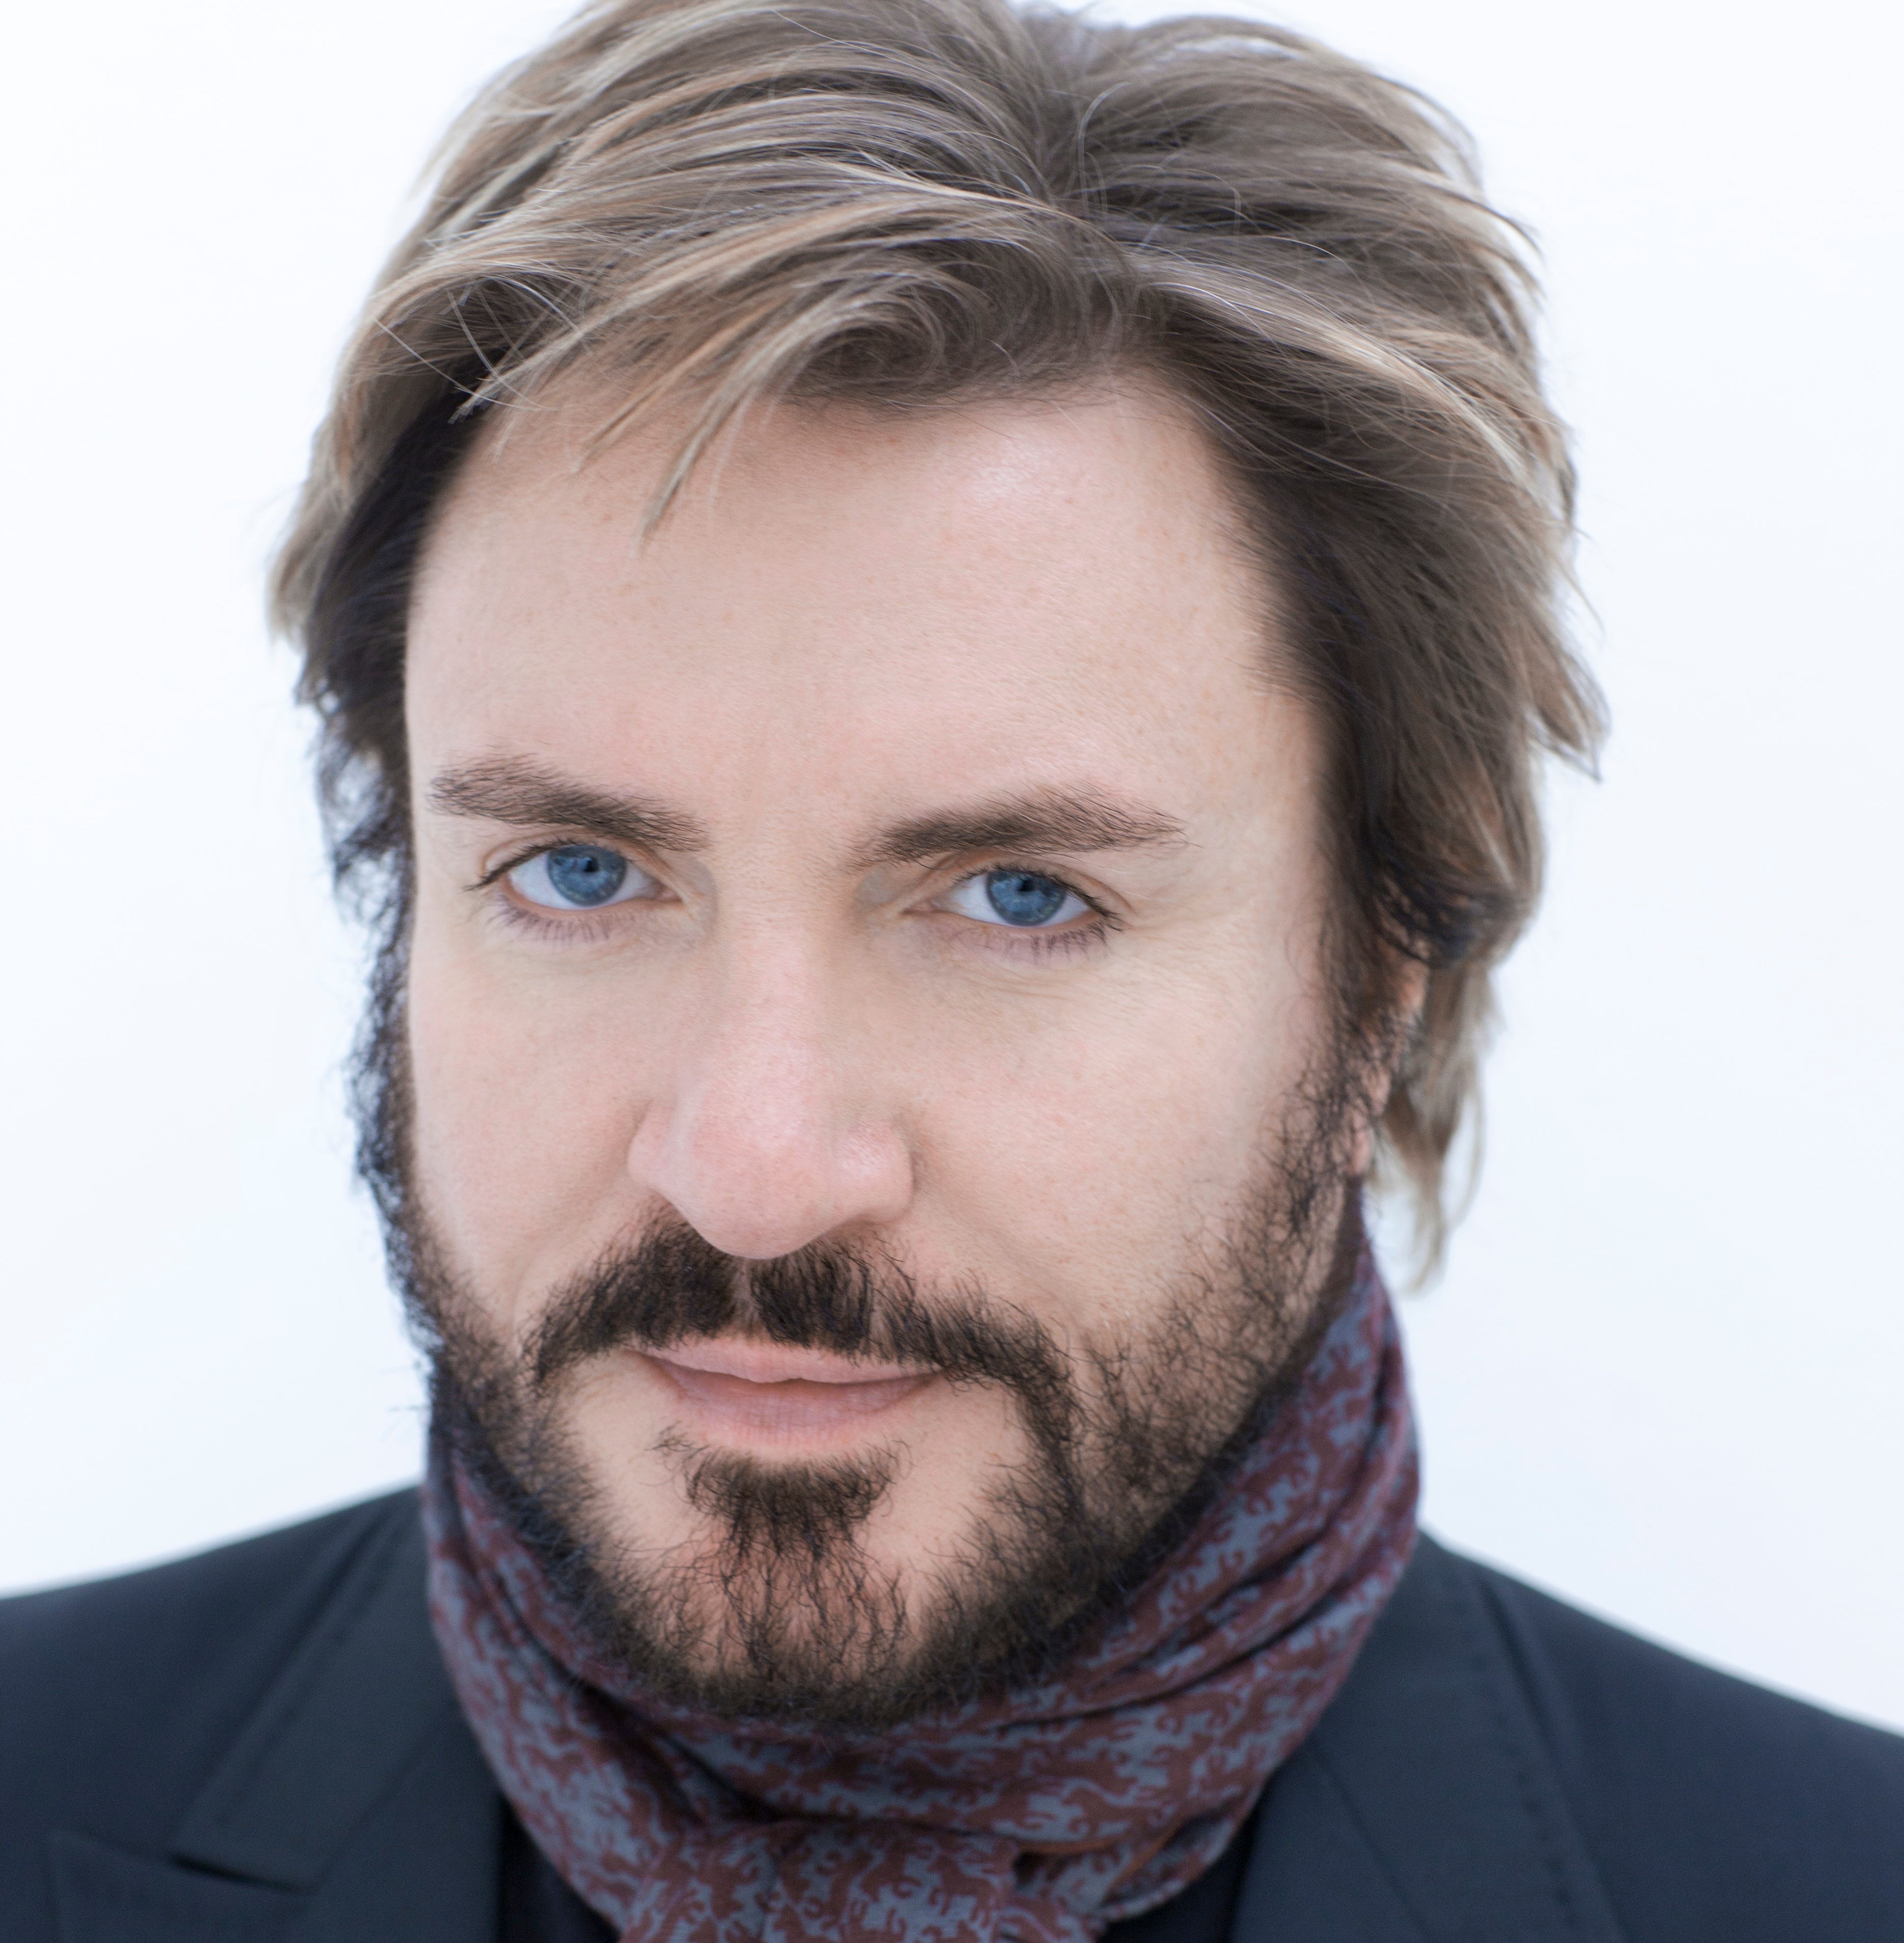 Simon Le Bon, lead singer of Duran Duran, is coming to Melbourne for BCA cultural summit